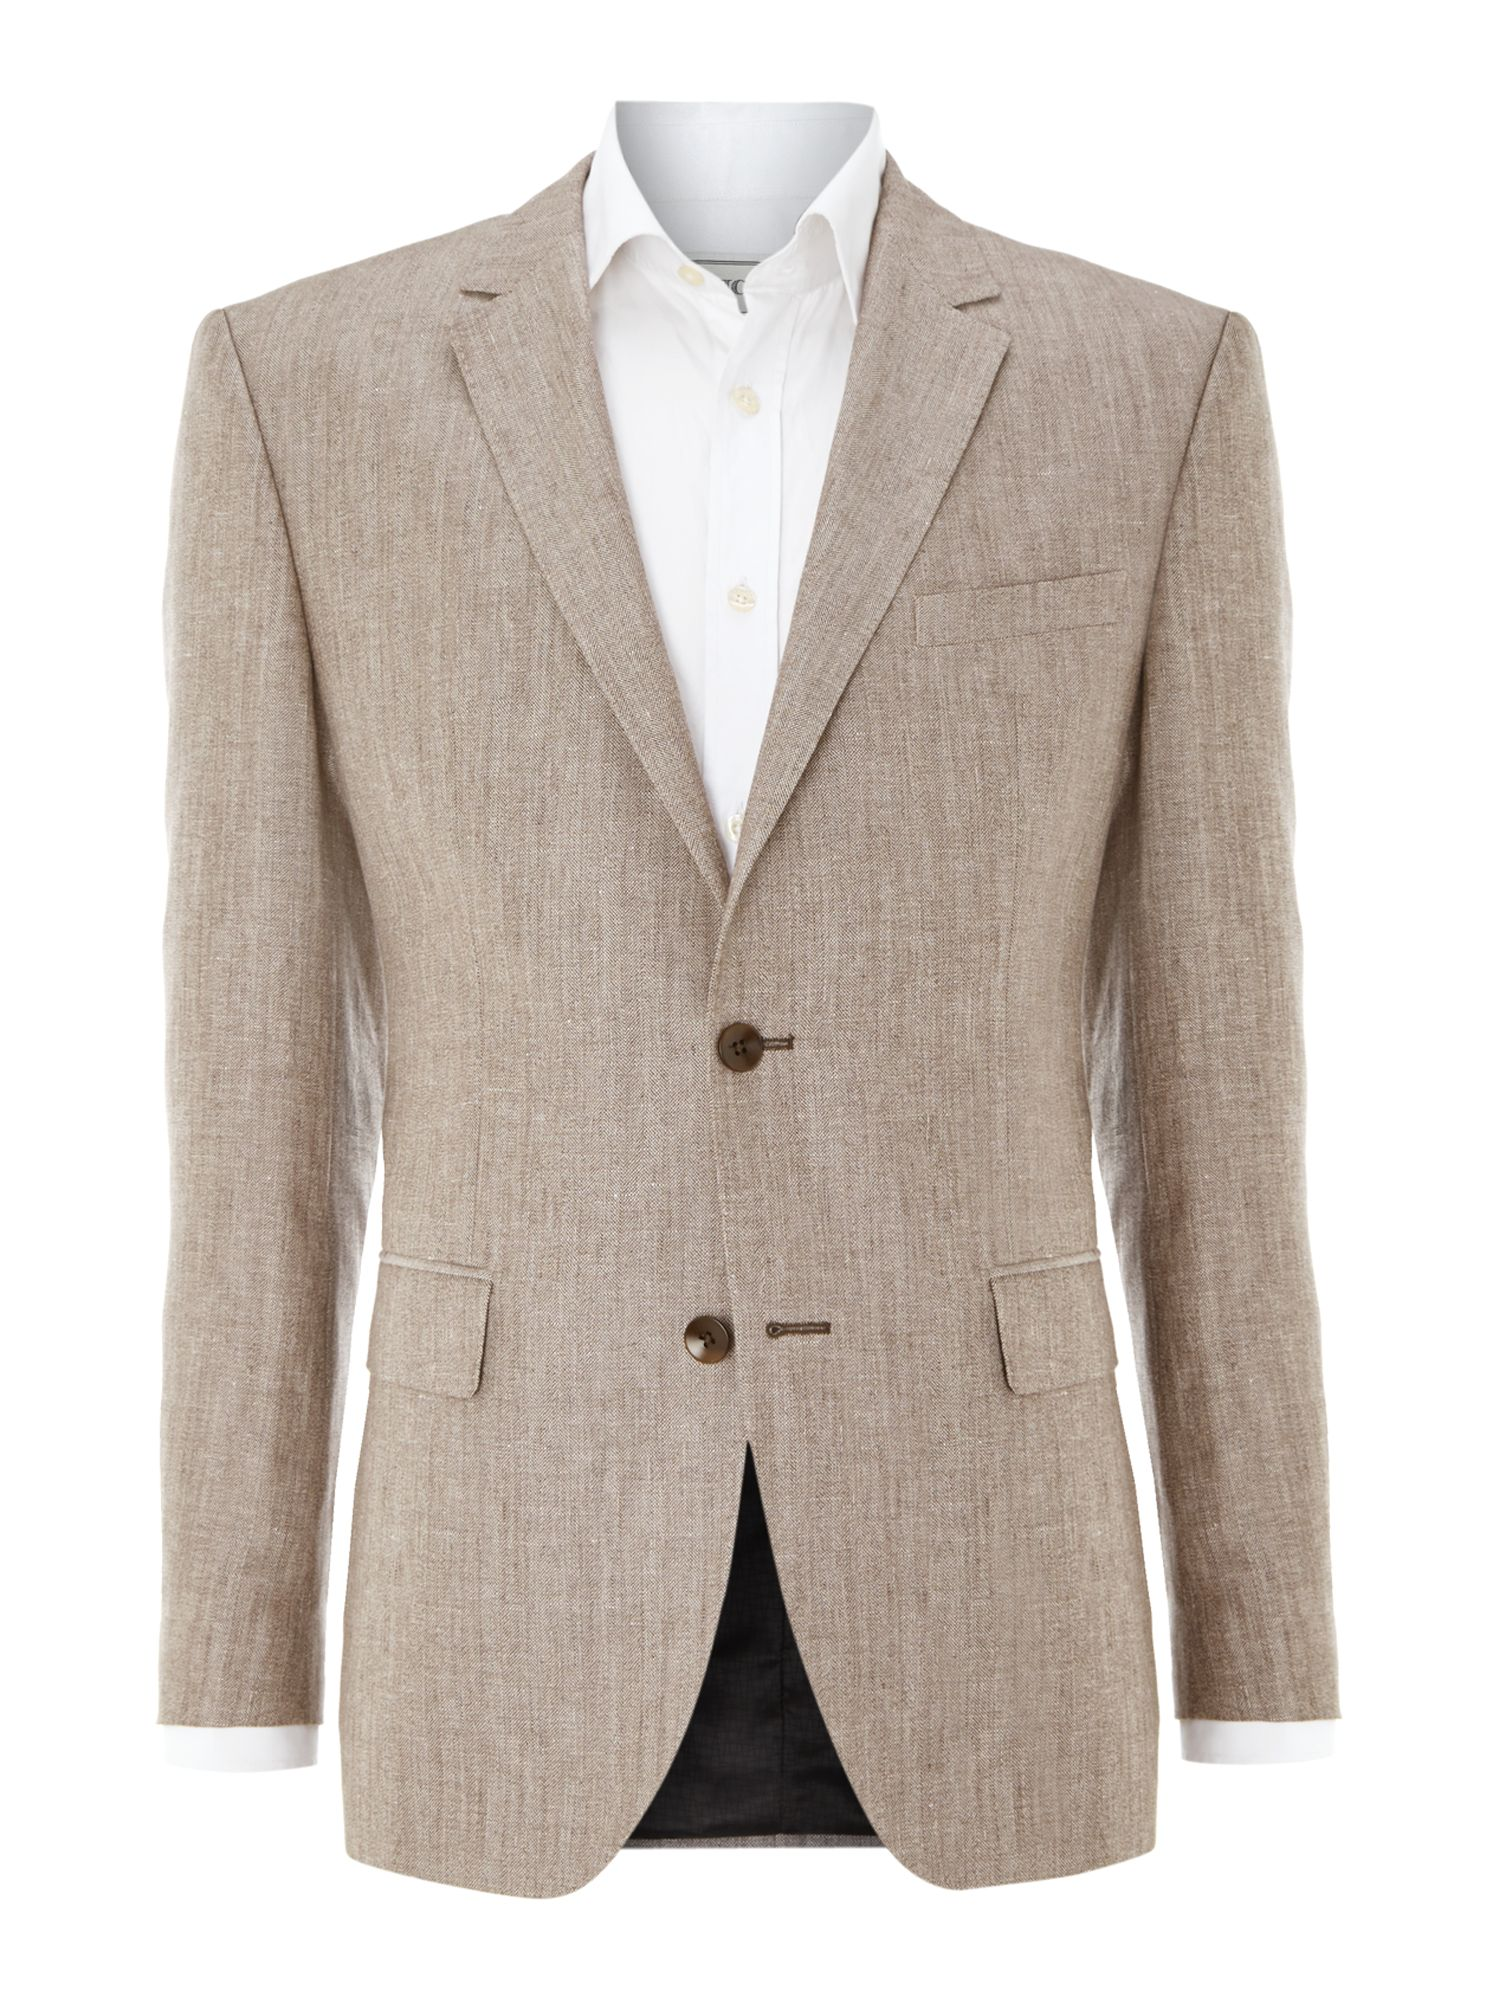 The Keys regular fit herringbone jacket